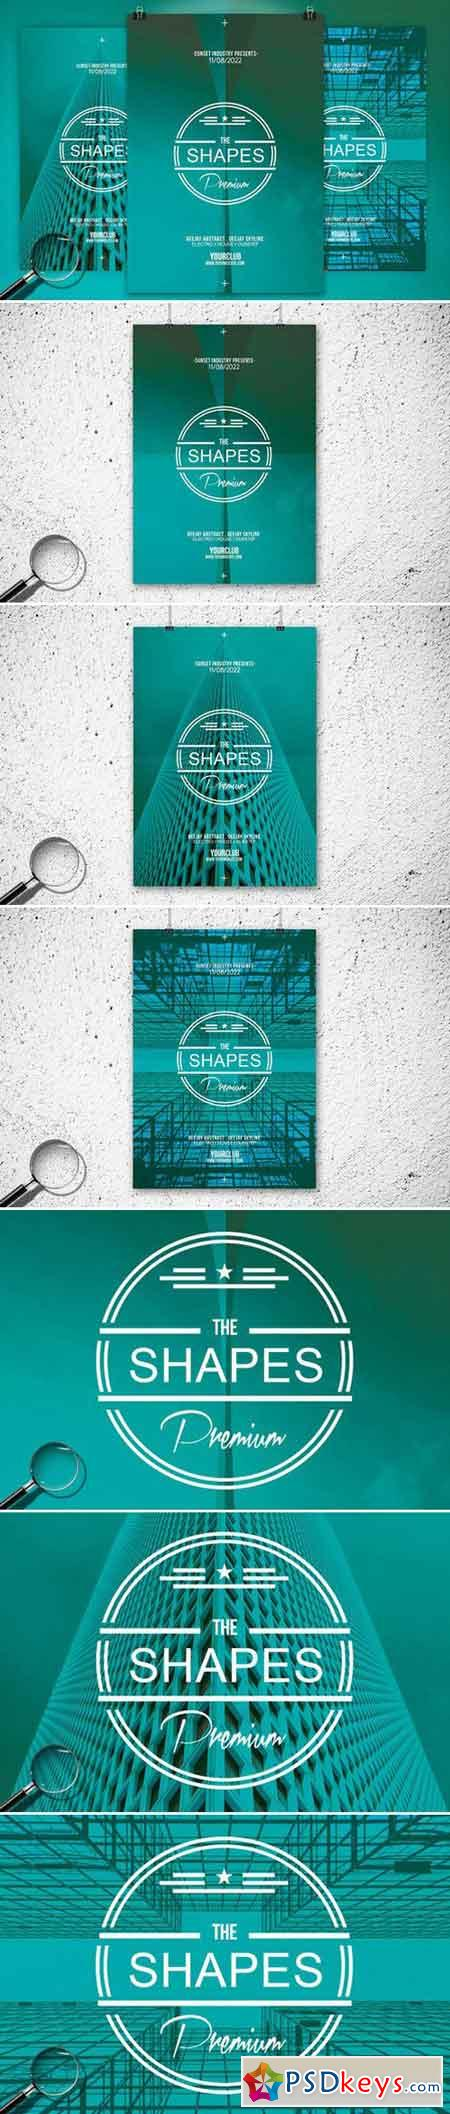 The Shapes 3in1 Flyer Template 758898